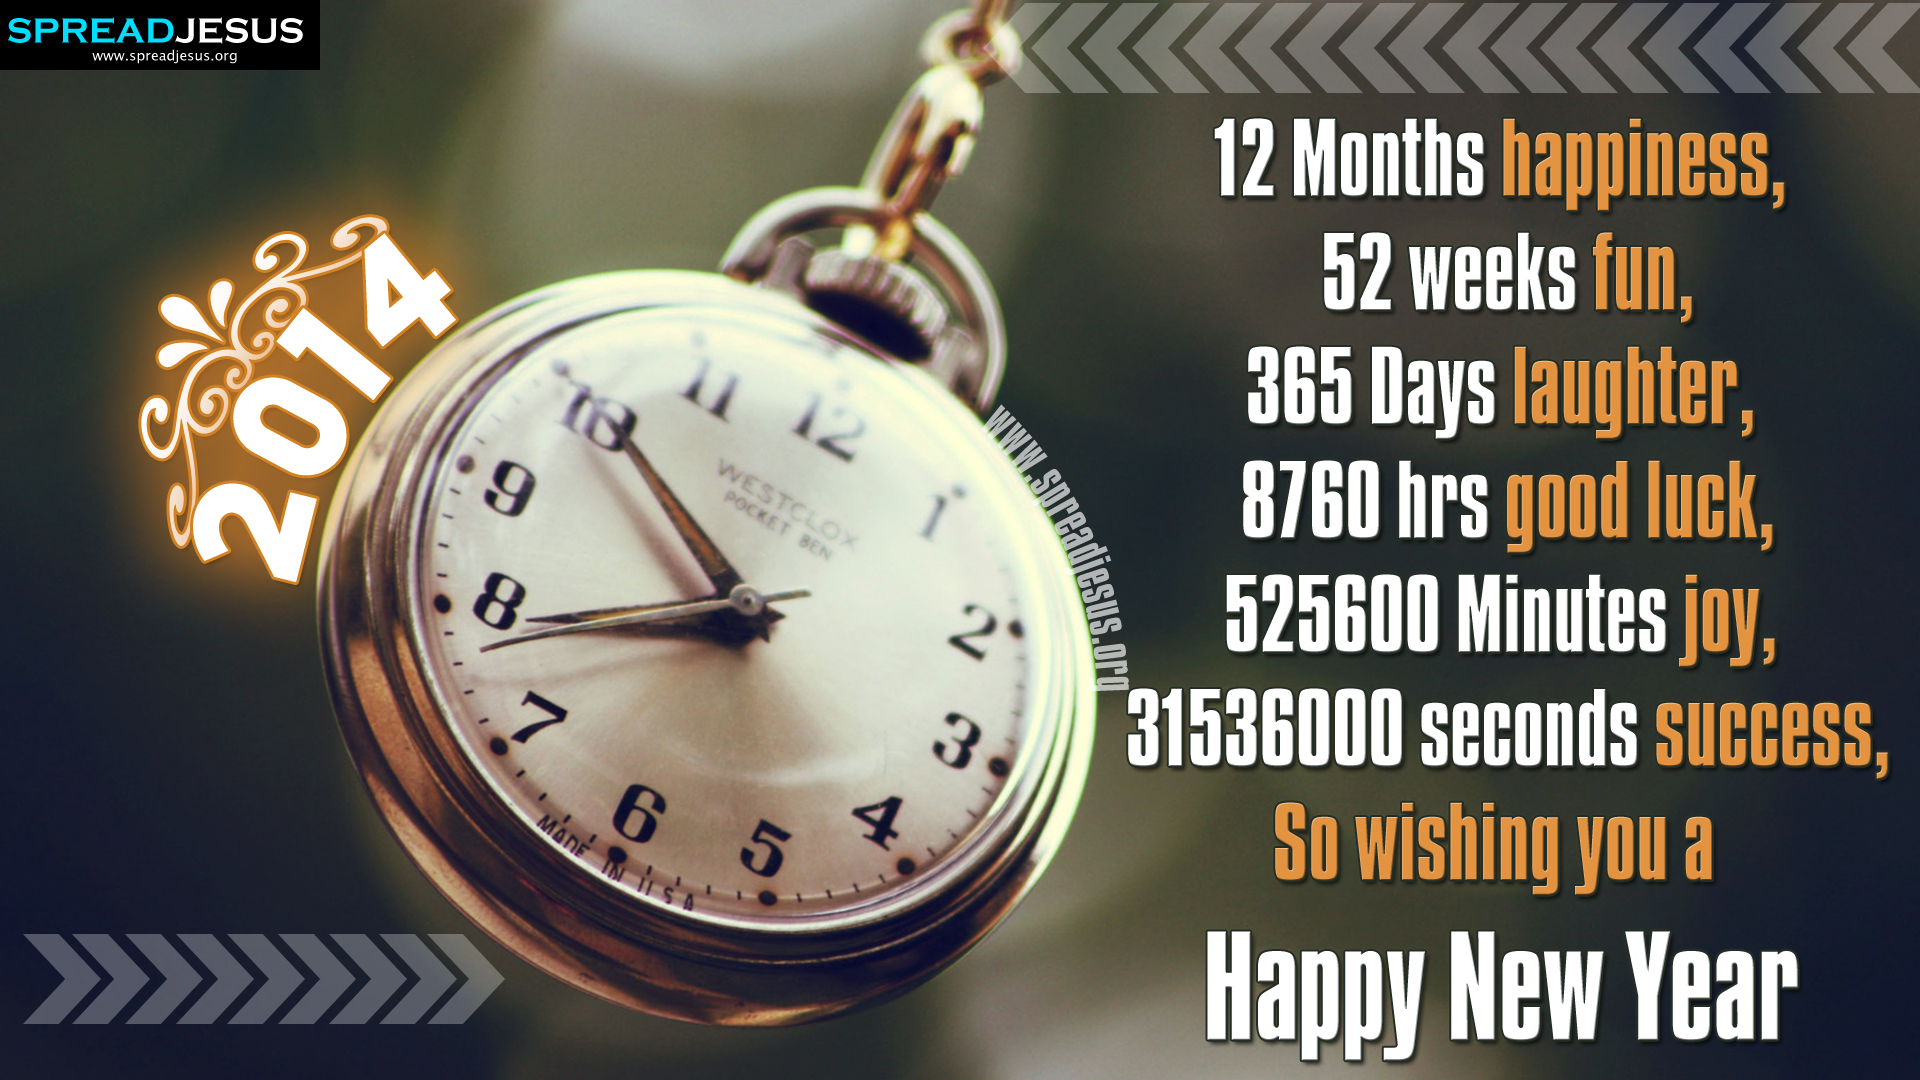 1 Year 12 Months 52 Weeks 365 Days Quotes: HAPPY NEW YEAR 2014 GREETINGS HD-WALLPAPERS